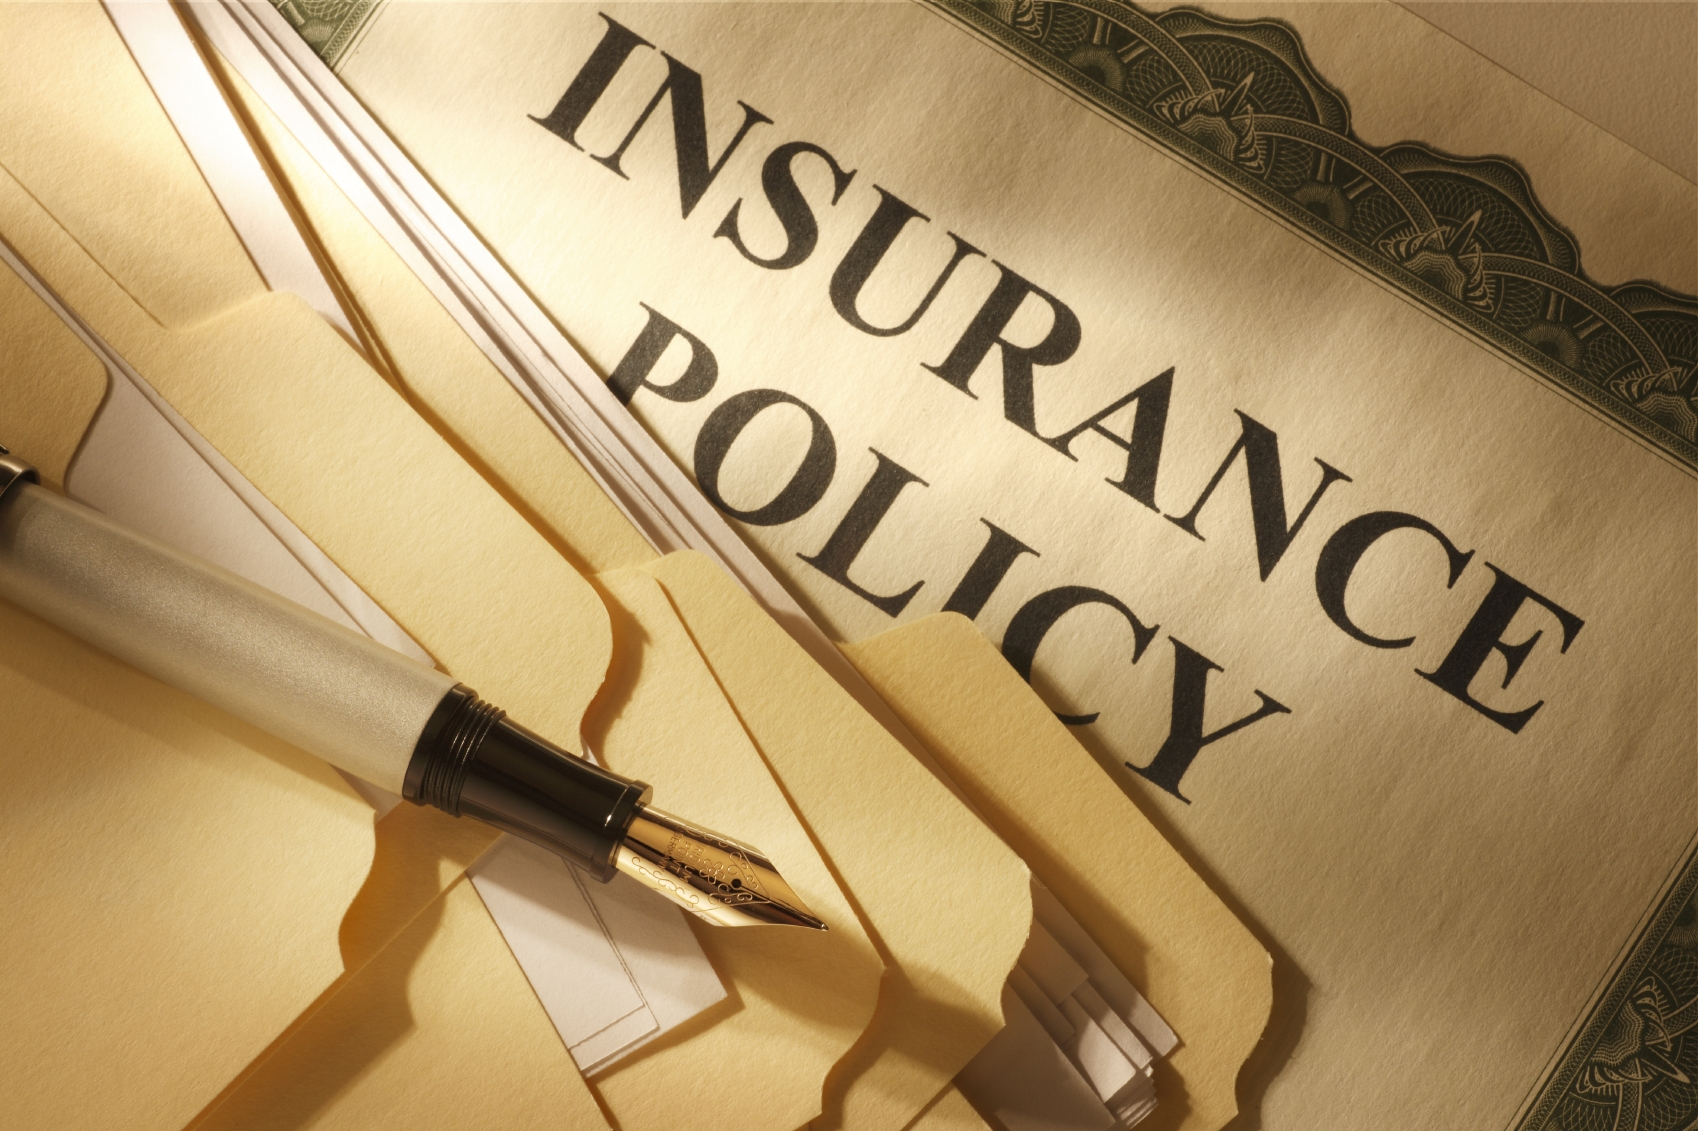 Insurance policy certificate with pen